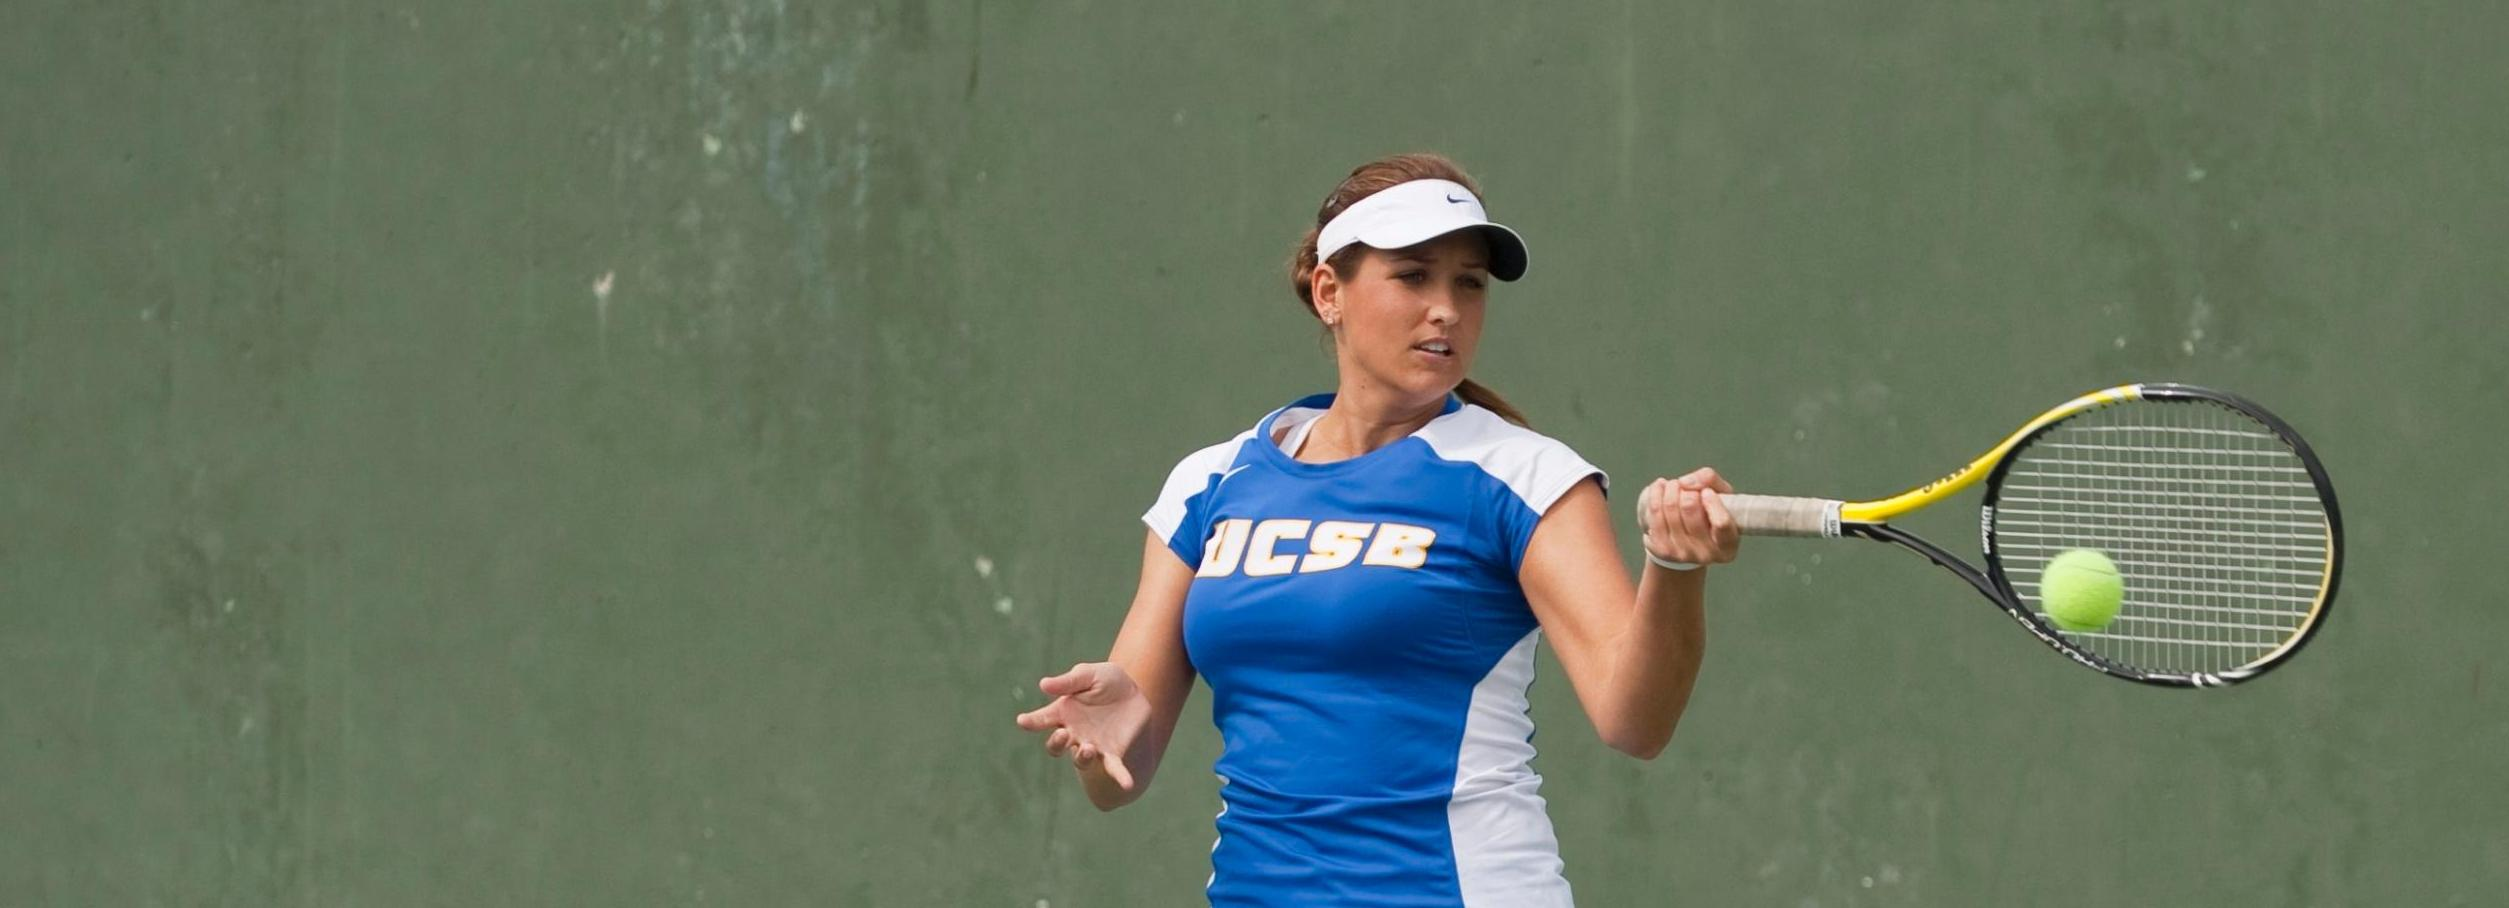 Gauchos Cruise Past Portland, 6-1